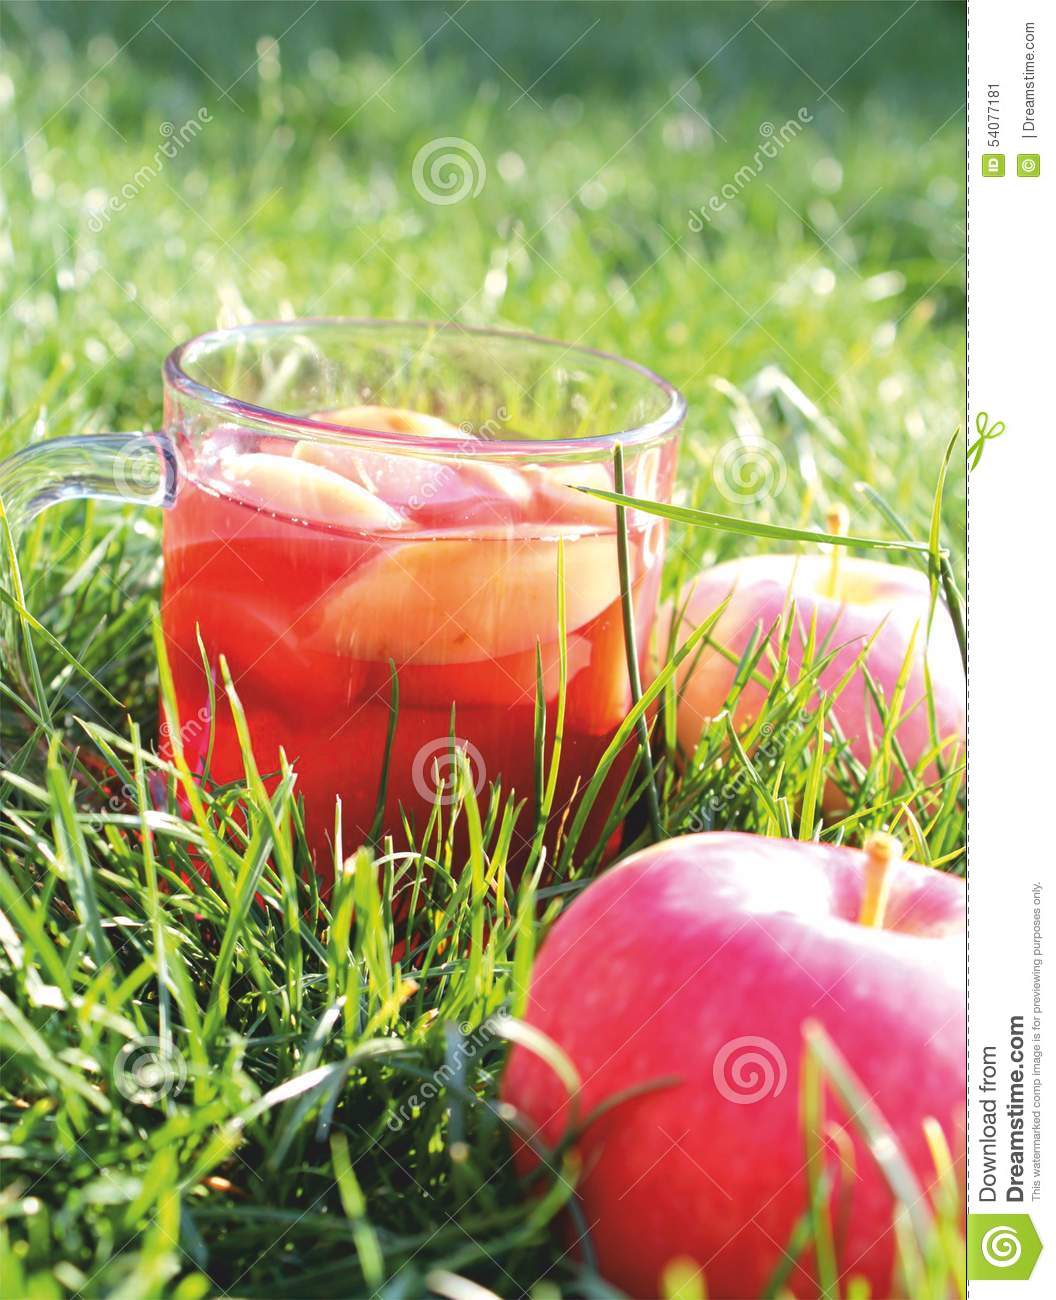 Apple-compote